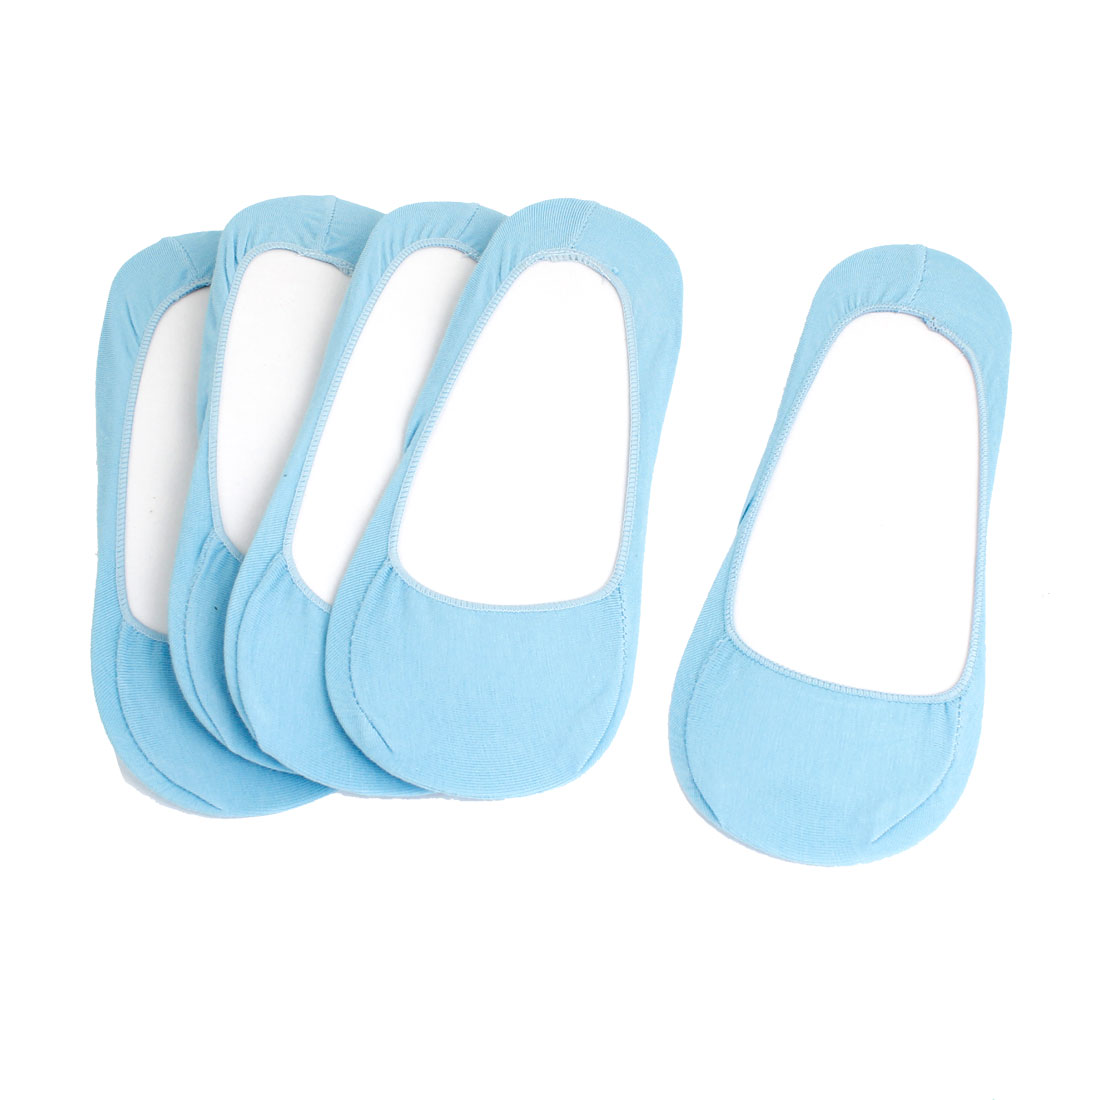 Ladies Baby Blue Stretchy Summer Footsie Boat Socks 5 Pairs